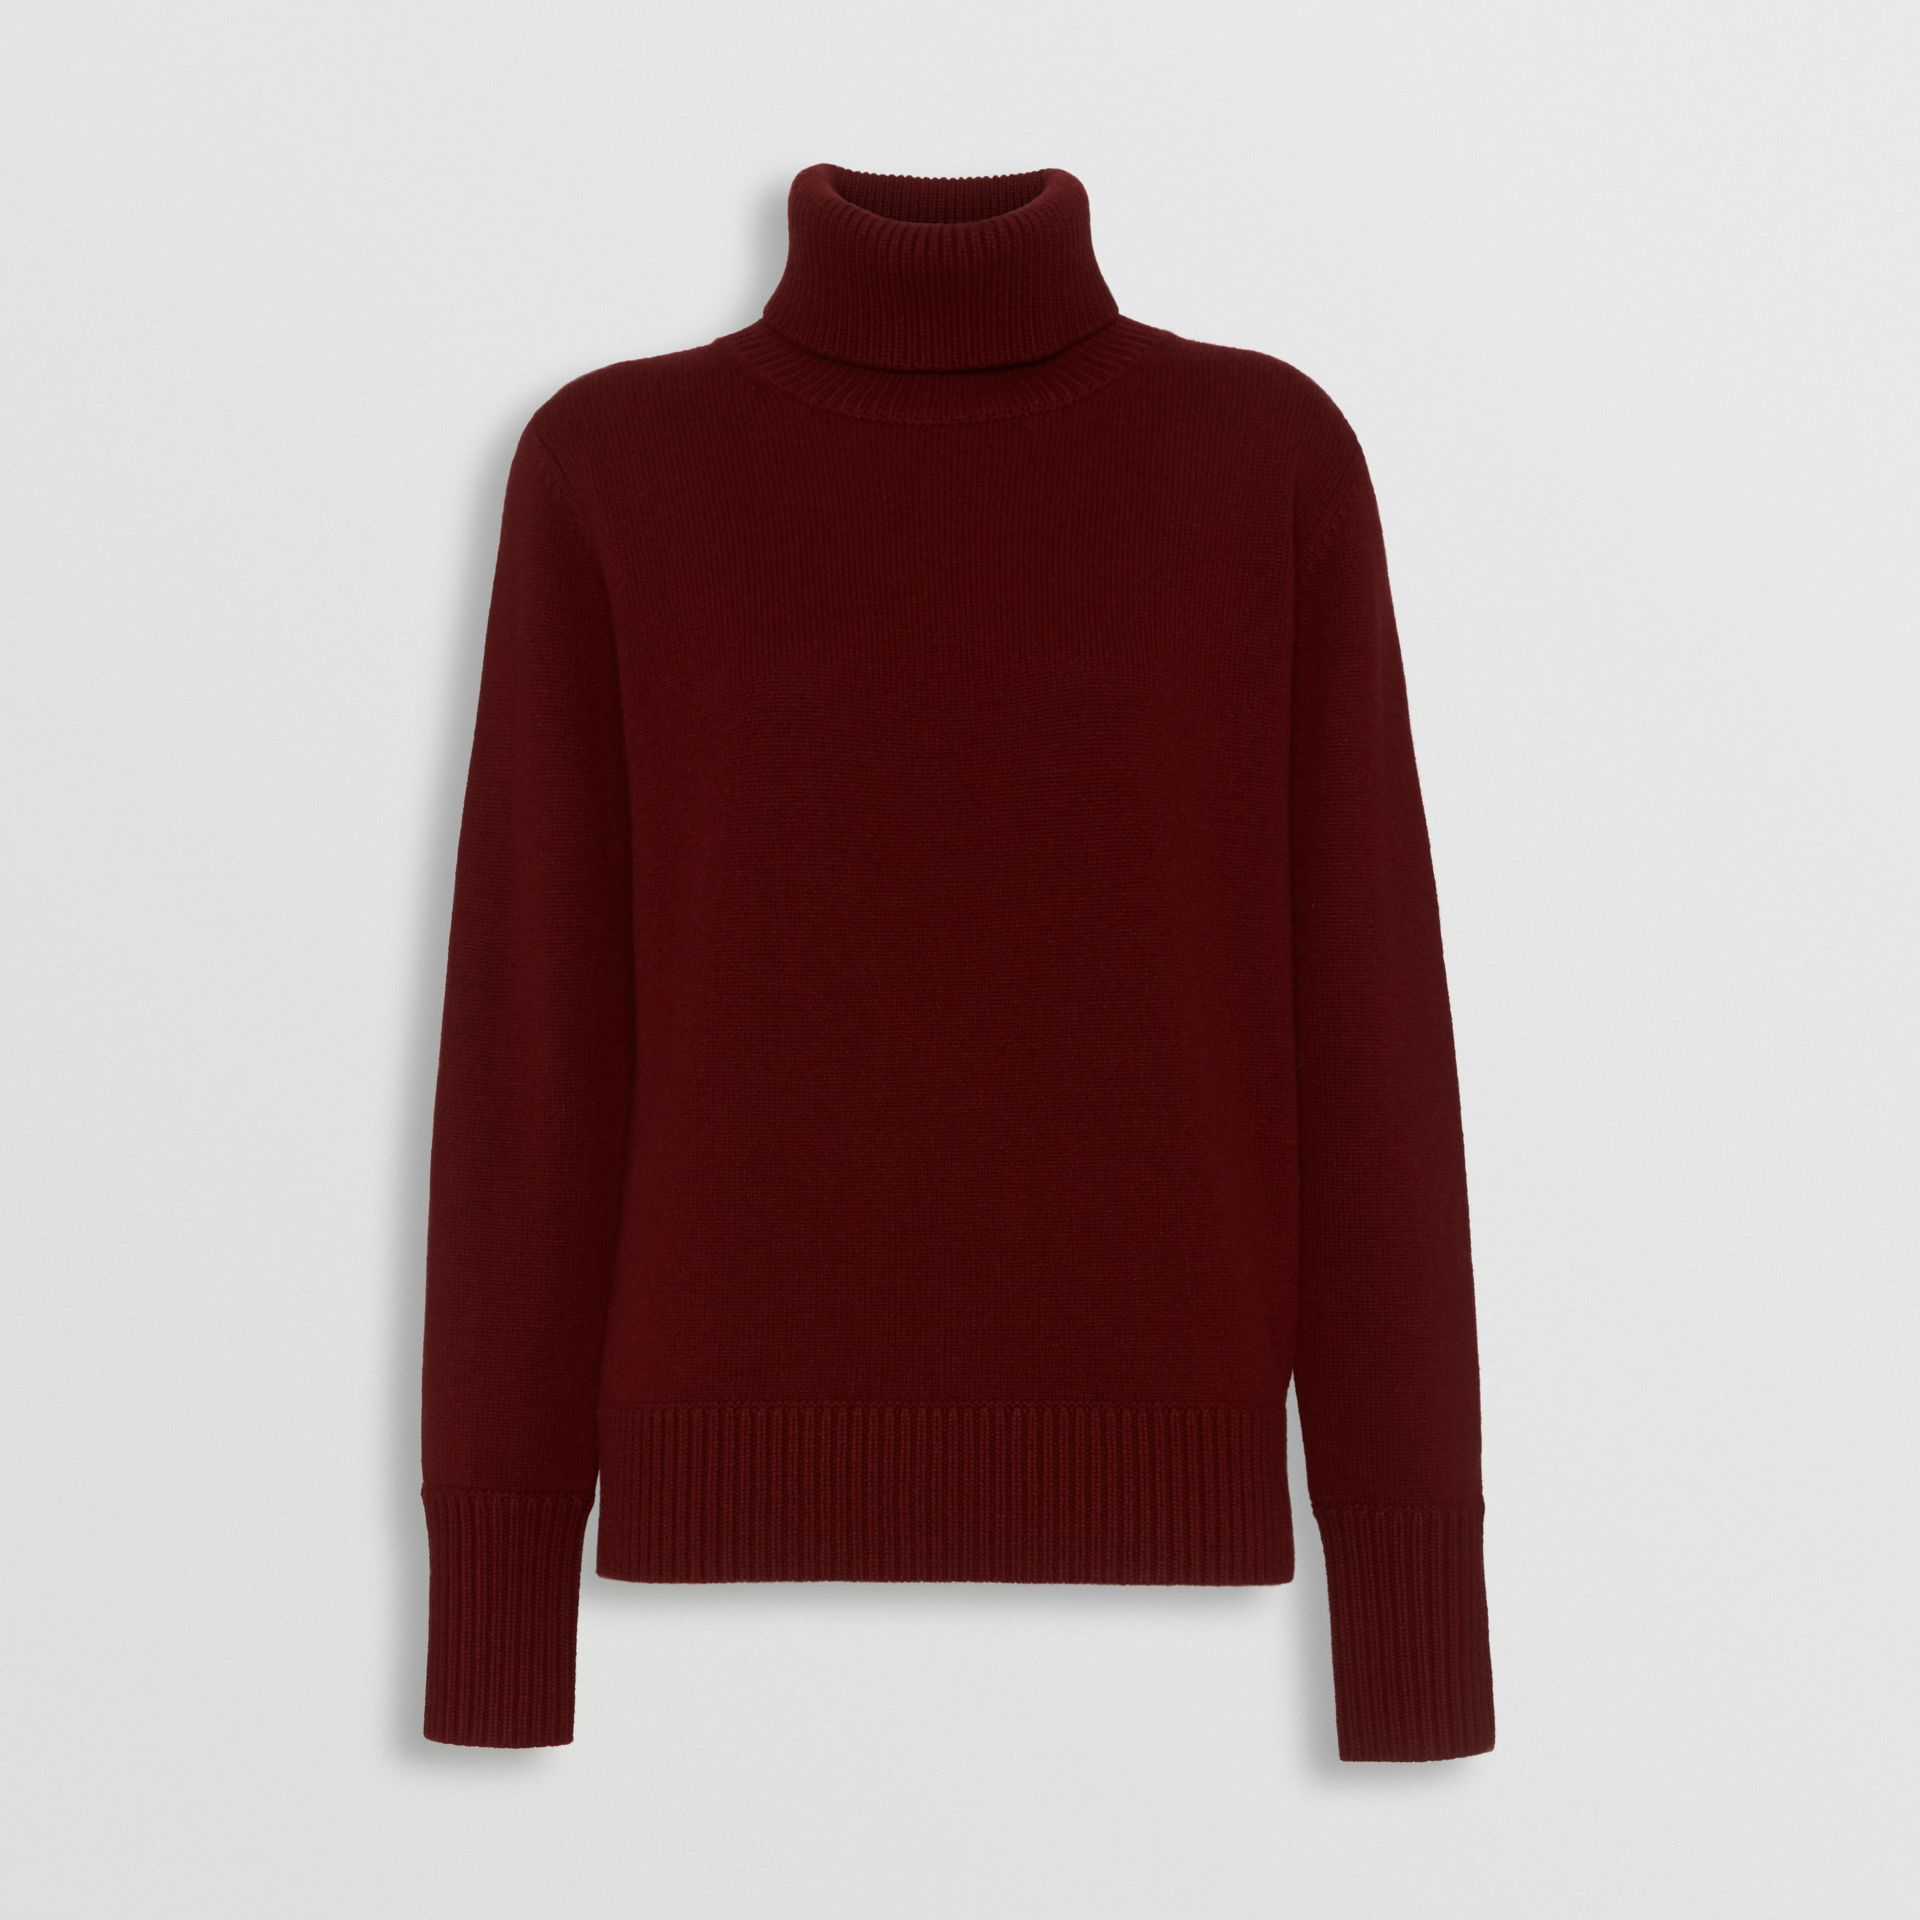 Embroidered Crest Cashmere Roll-neck Sweater in Red - Women | Burberry - gallery image 3